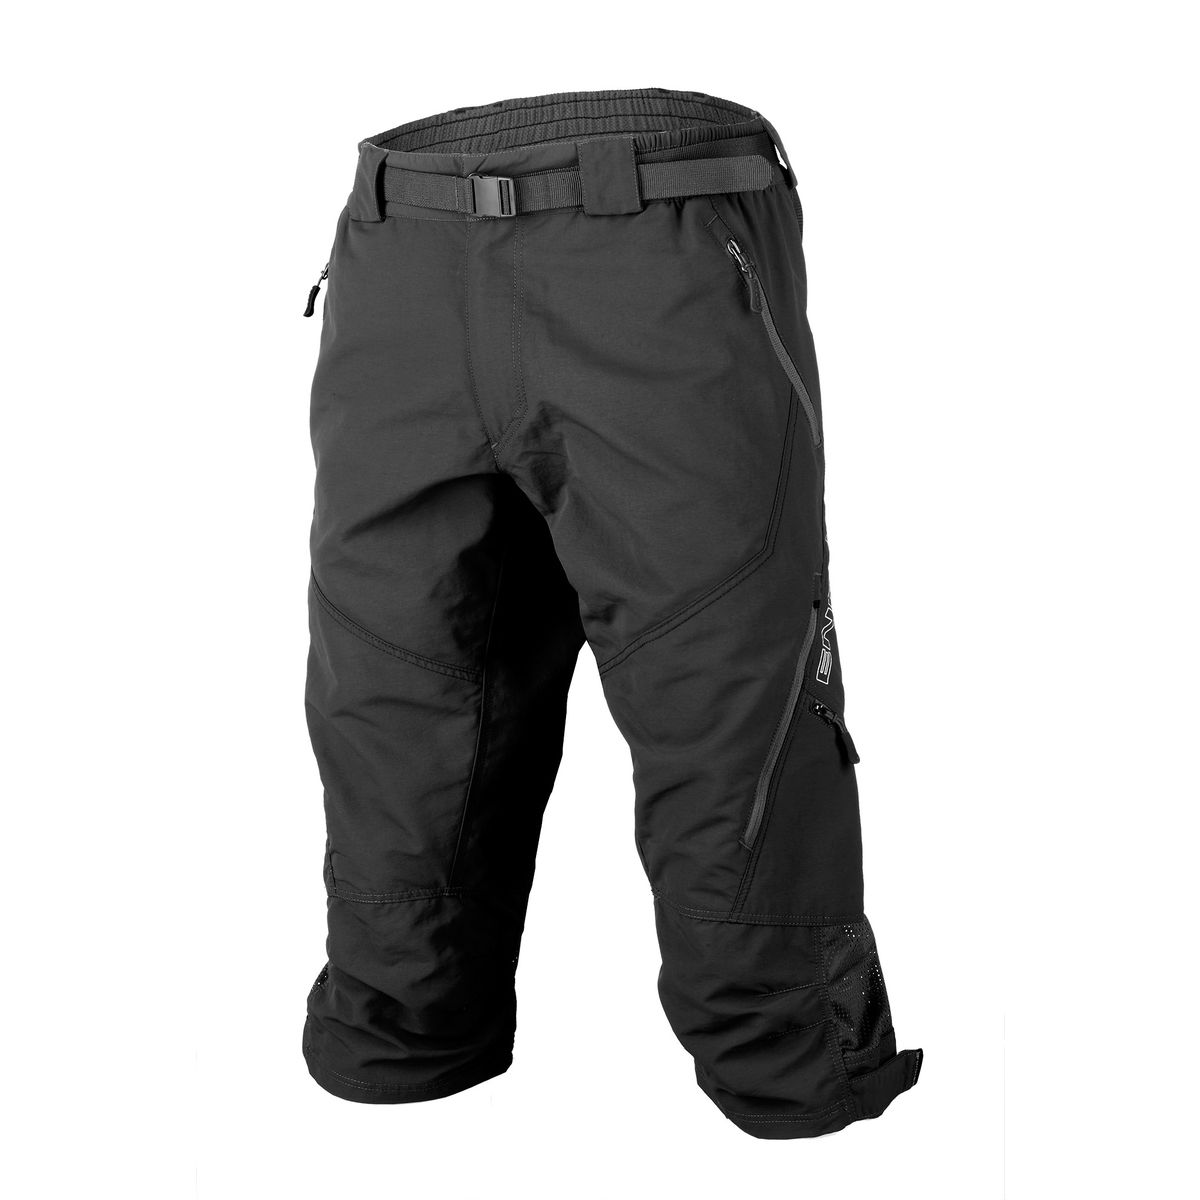 HUMMVEE ¾ SHORT II with Liner Pants